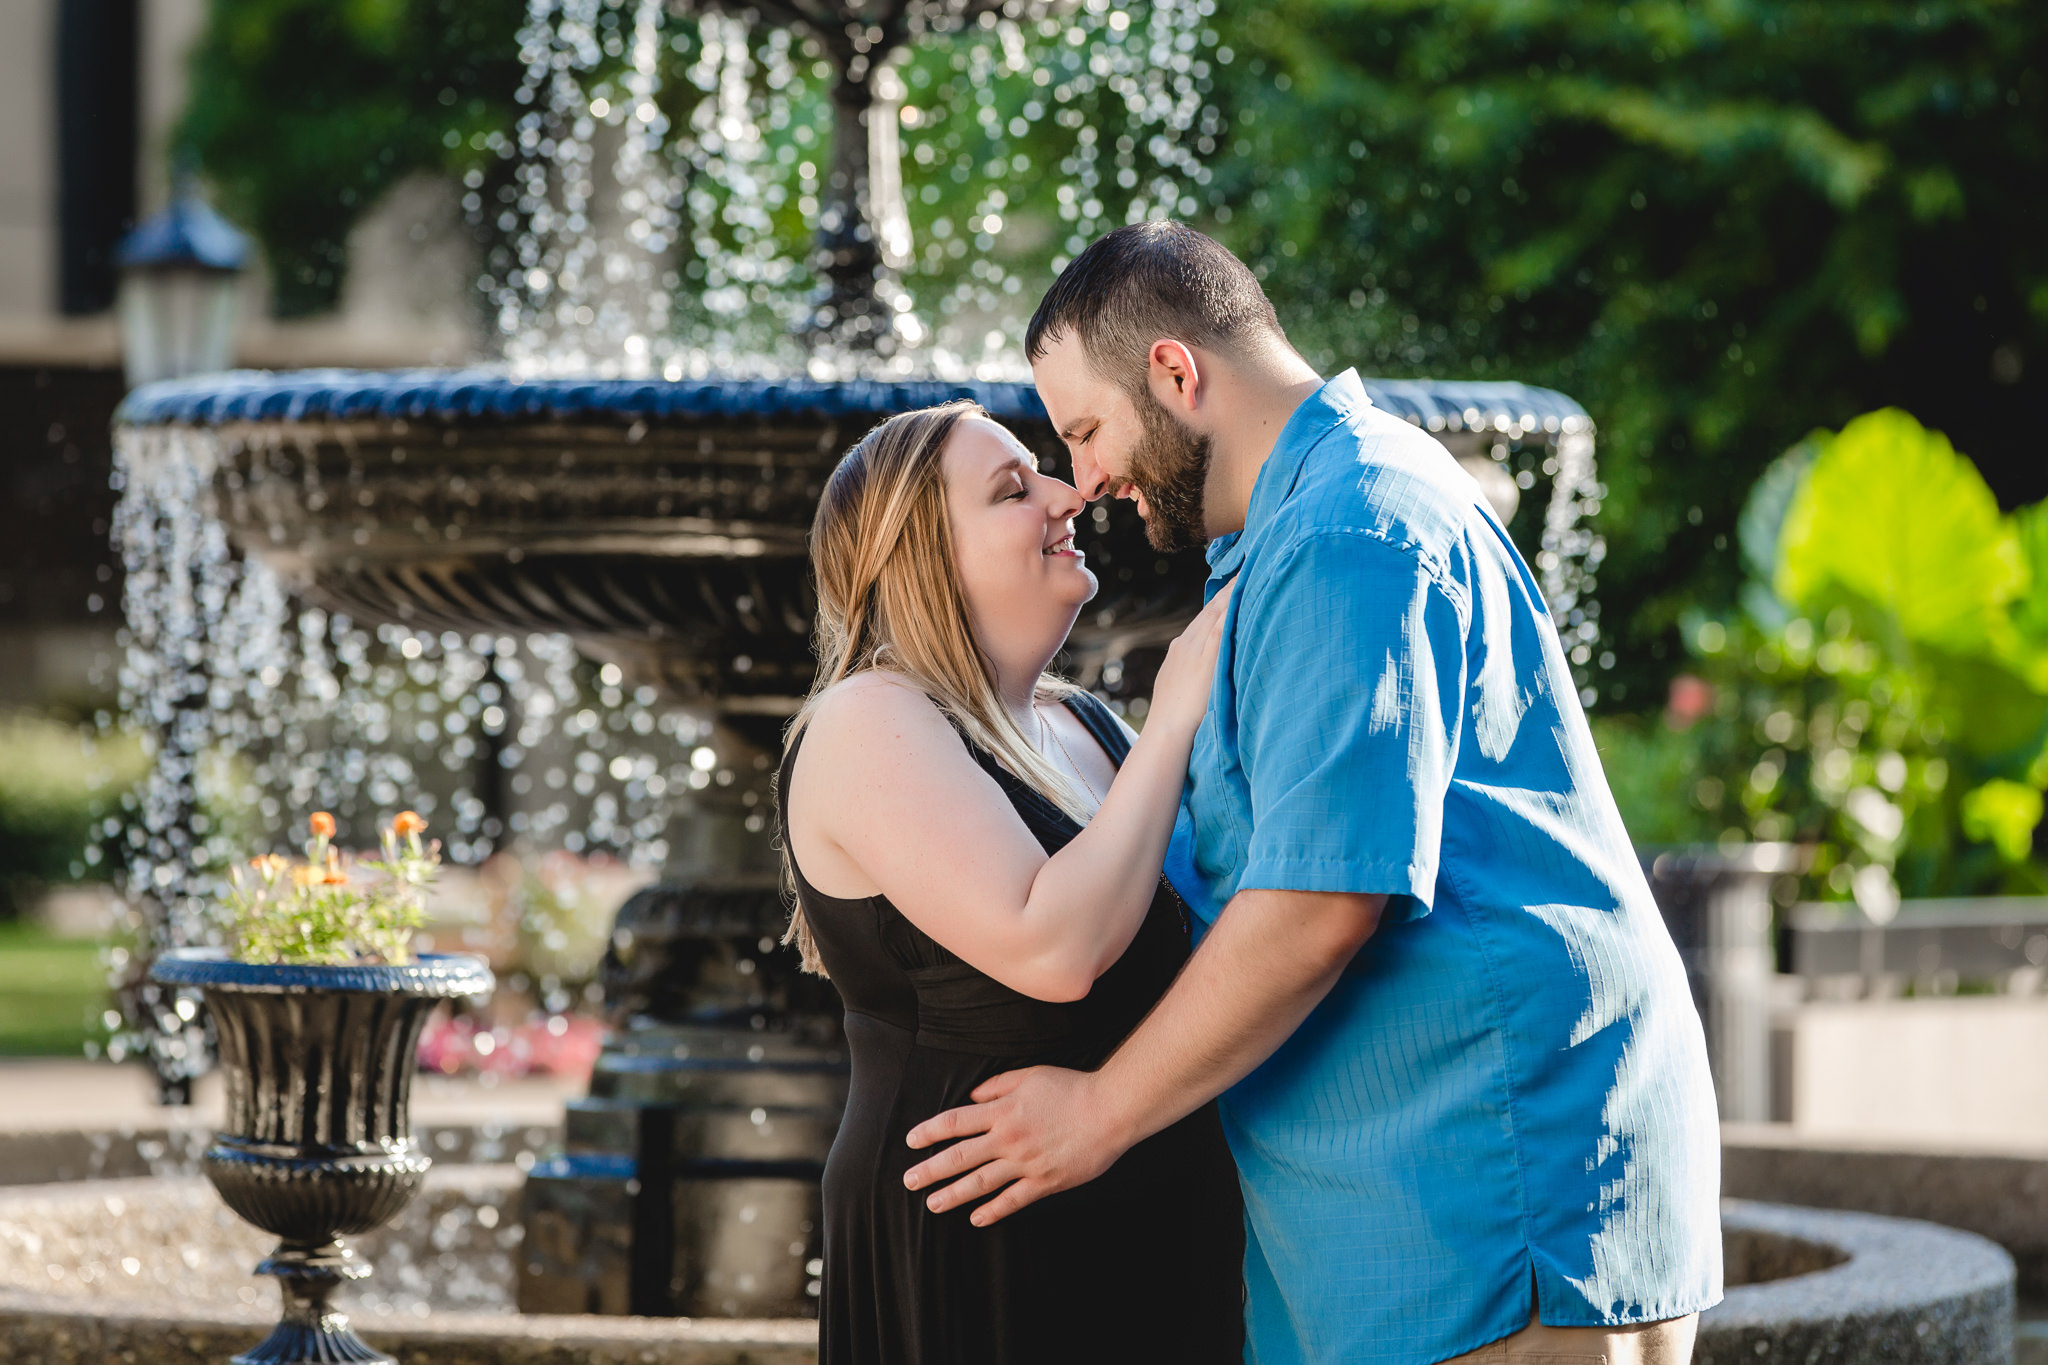 Duquesne University alumni nuzzle noses in front of a fountain during their engagement session on campus